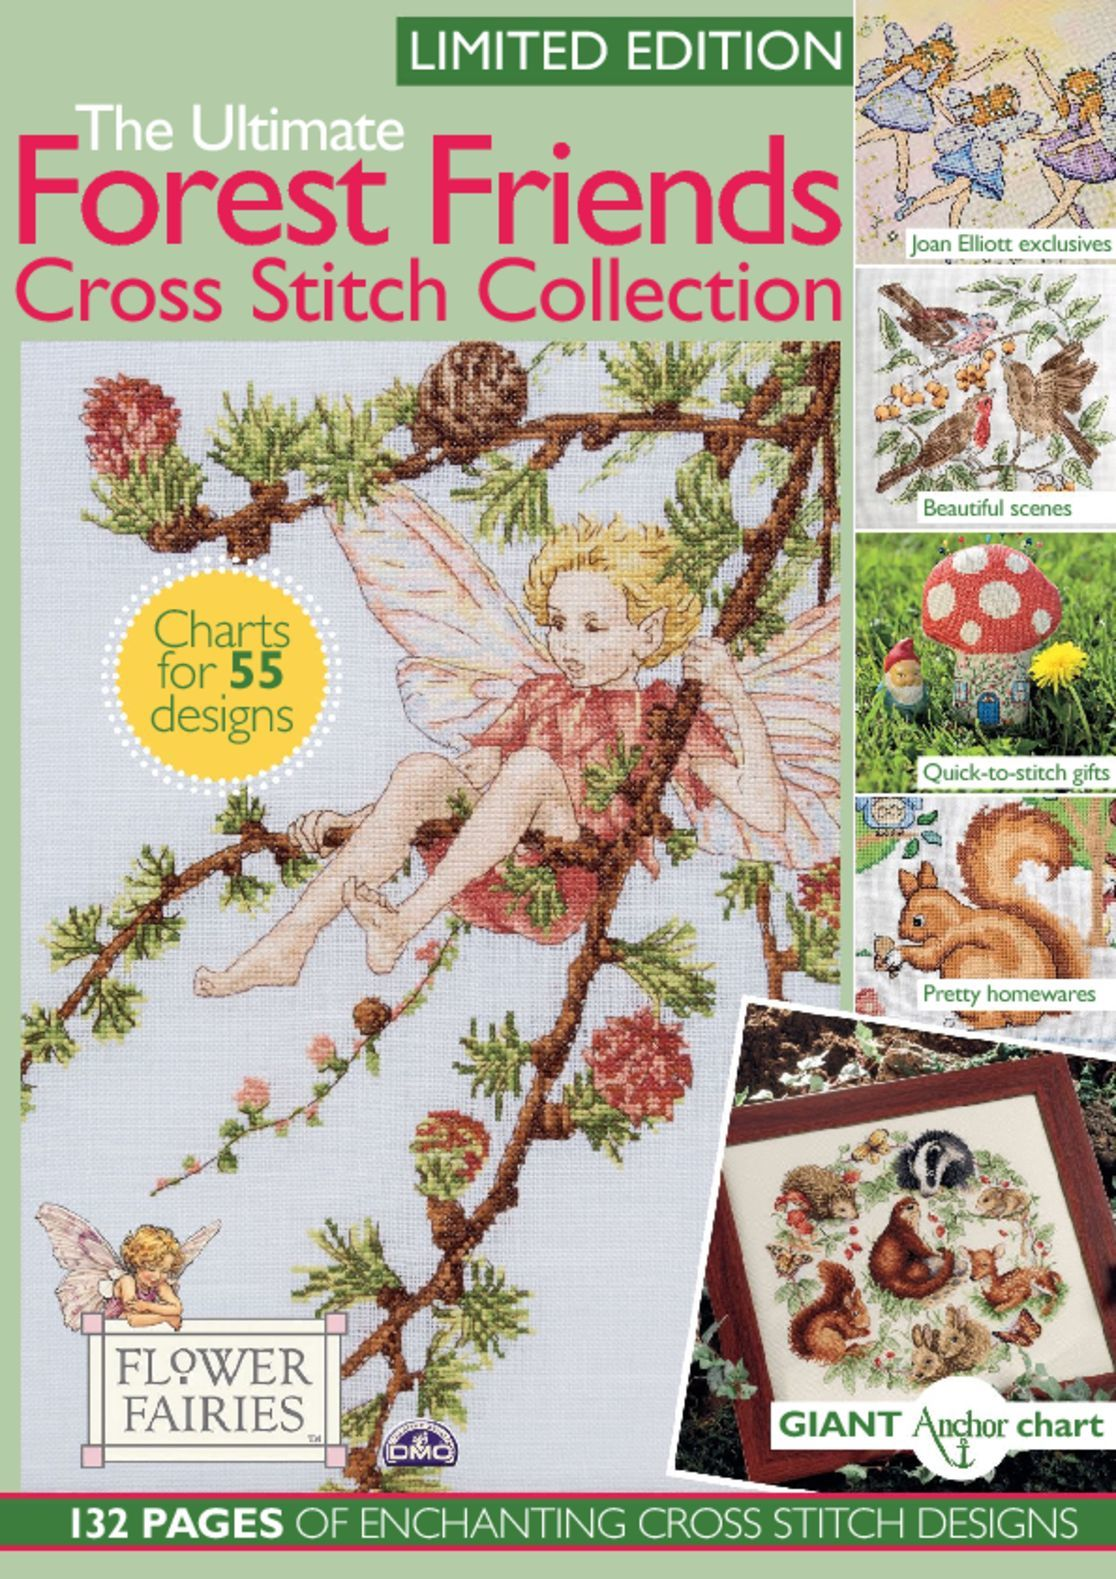 The Ultimate Forest Friends Cross Stitch Collection Digital